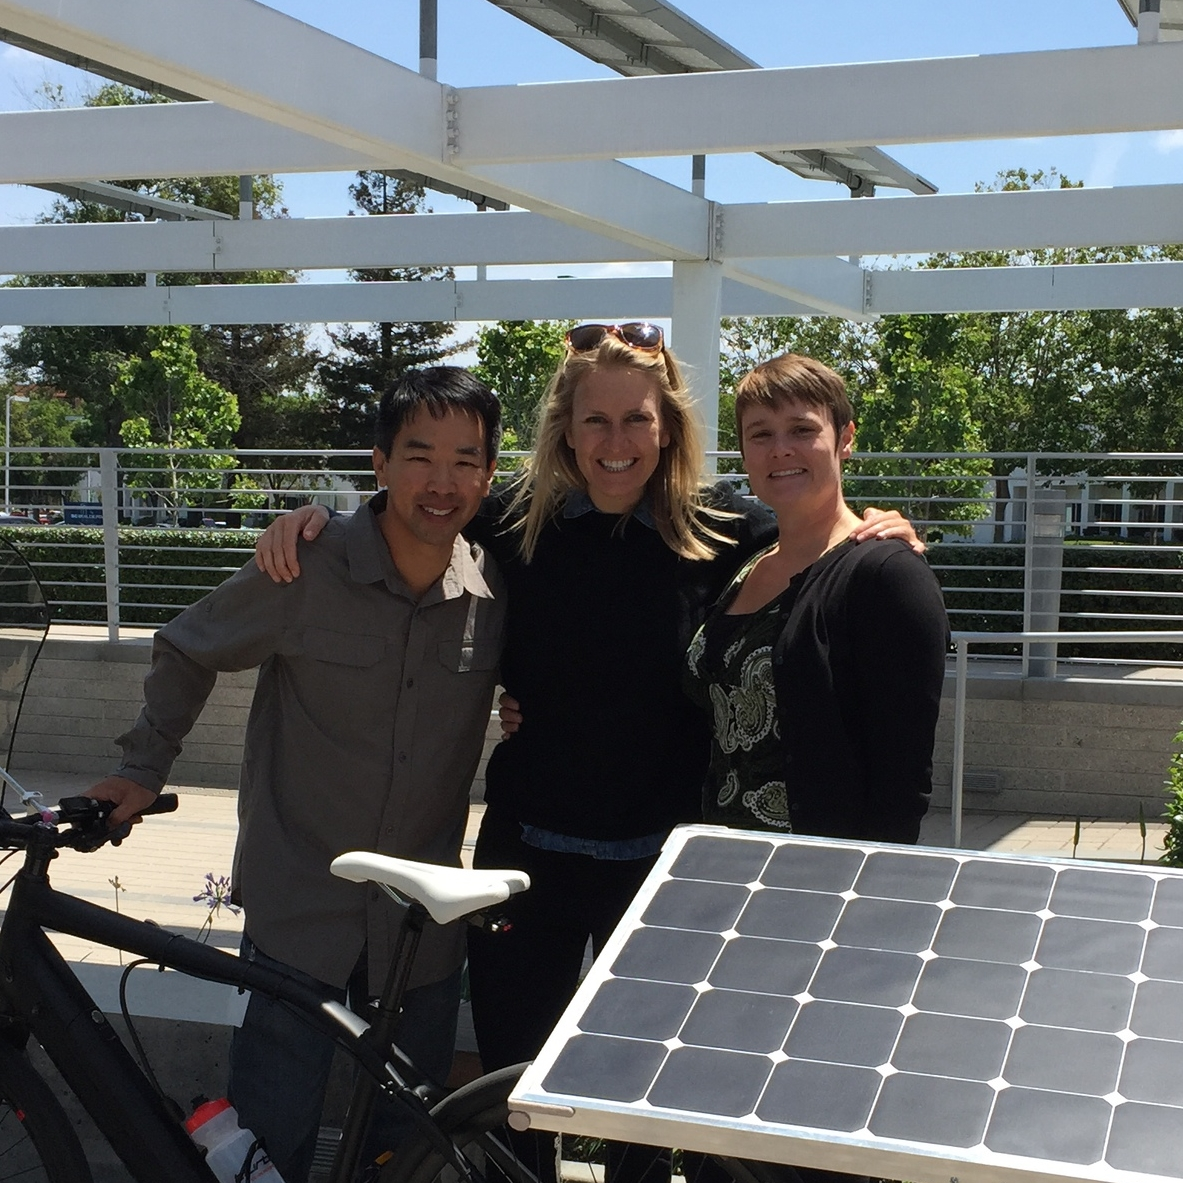 Kingsley and Kat  I could not have done this without you. Thank you for the extra hours of engineering wisdom and helping build the solar panel. You two are brilliant and SunPower is lucky to have you.